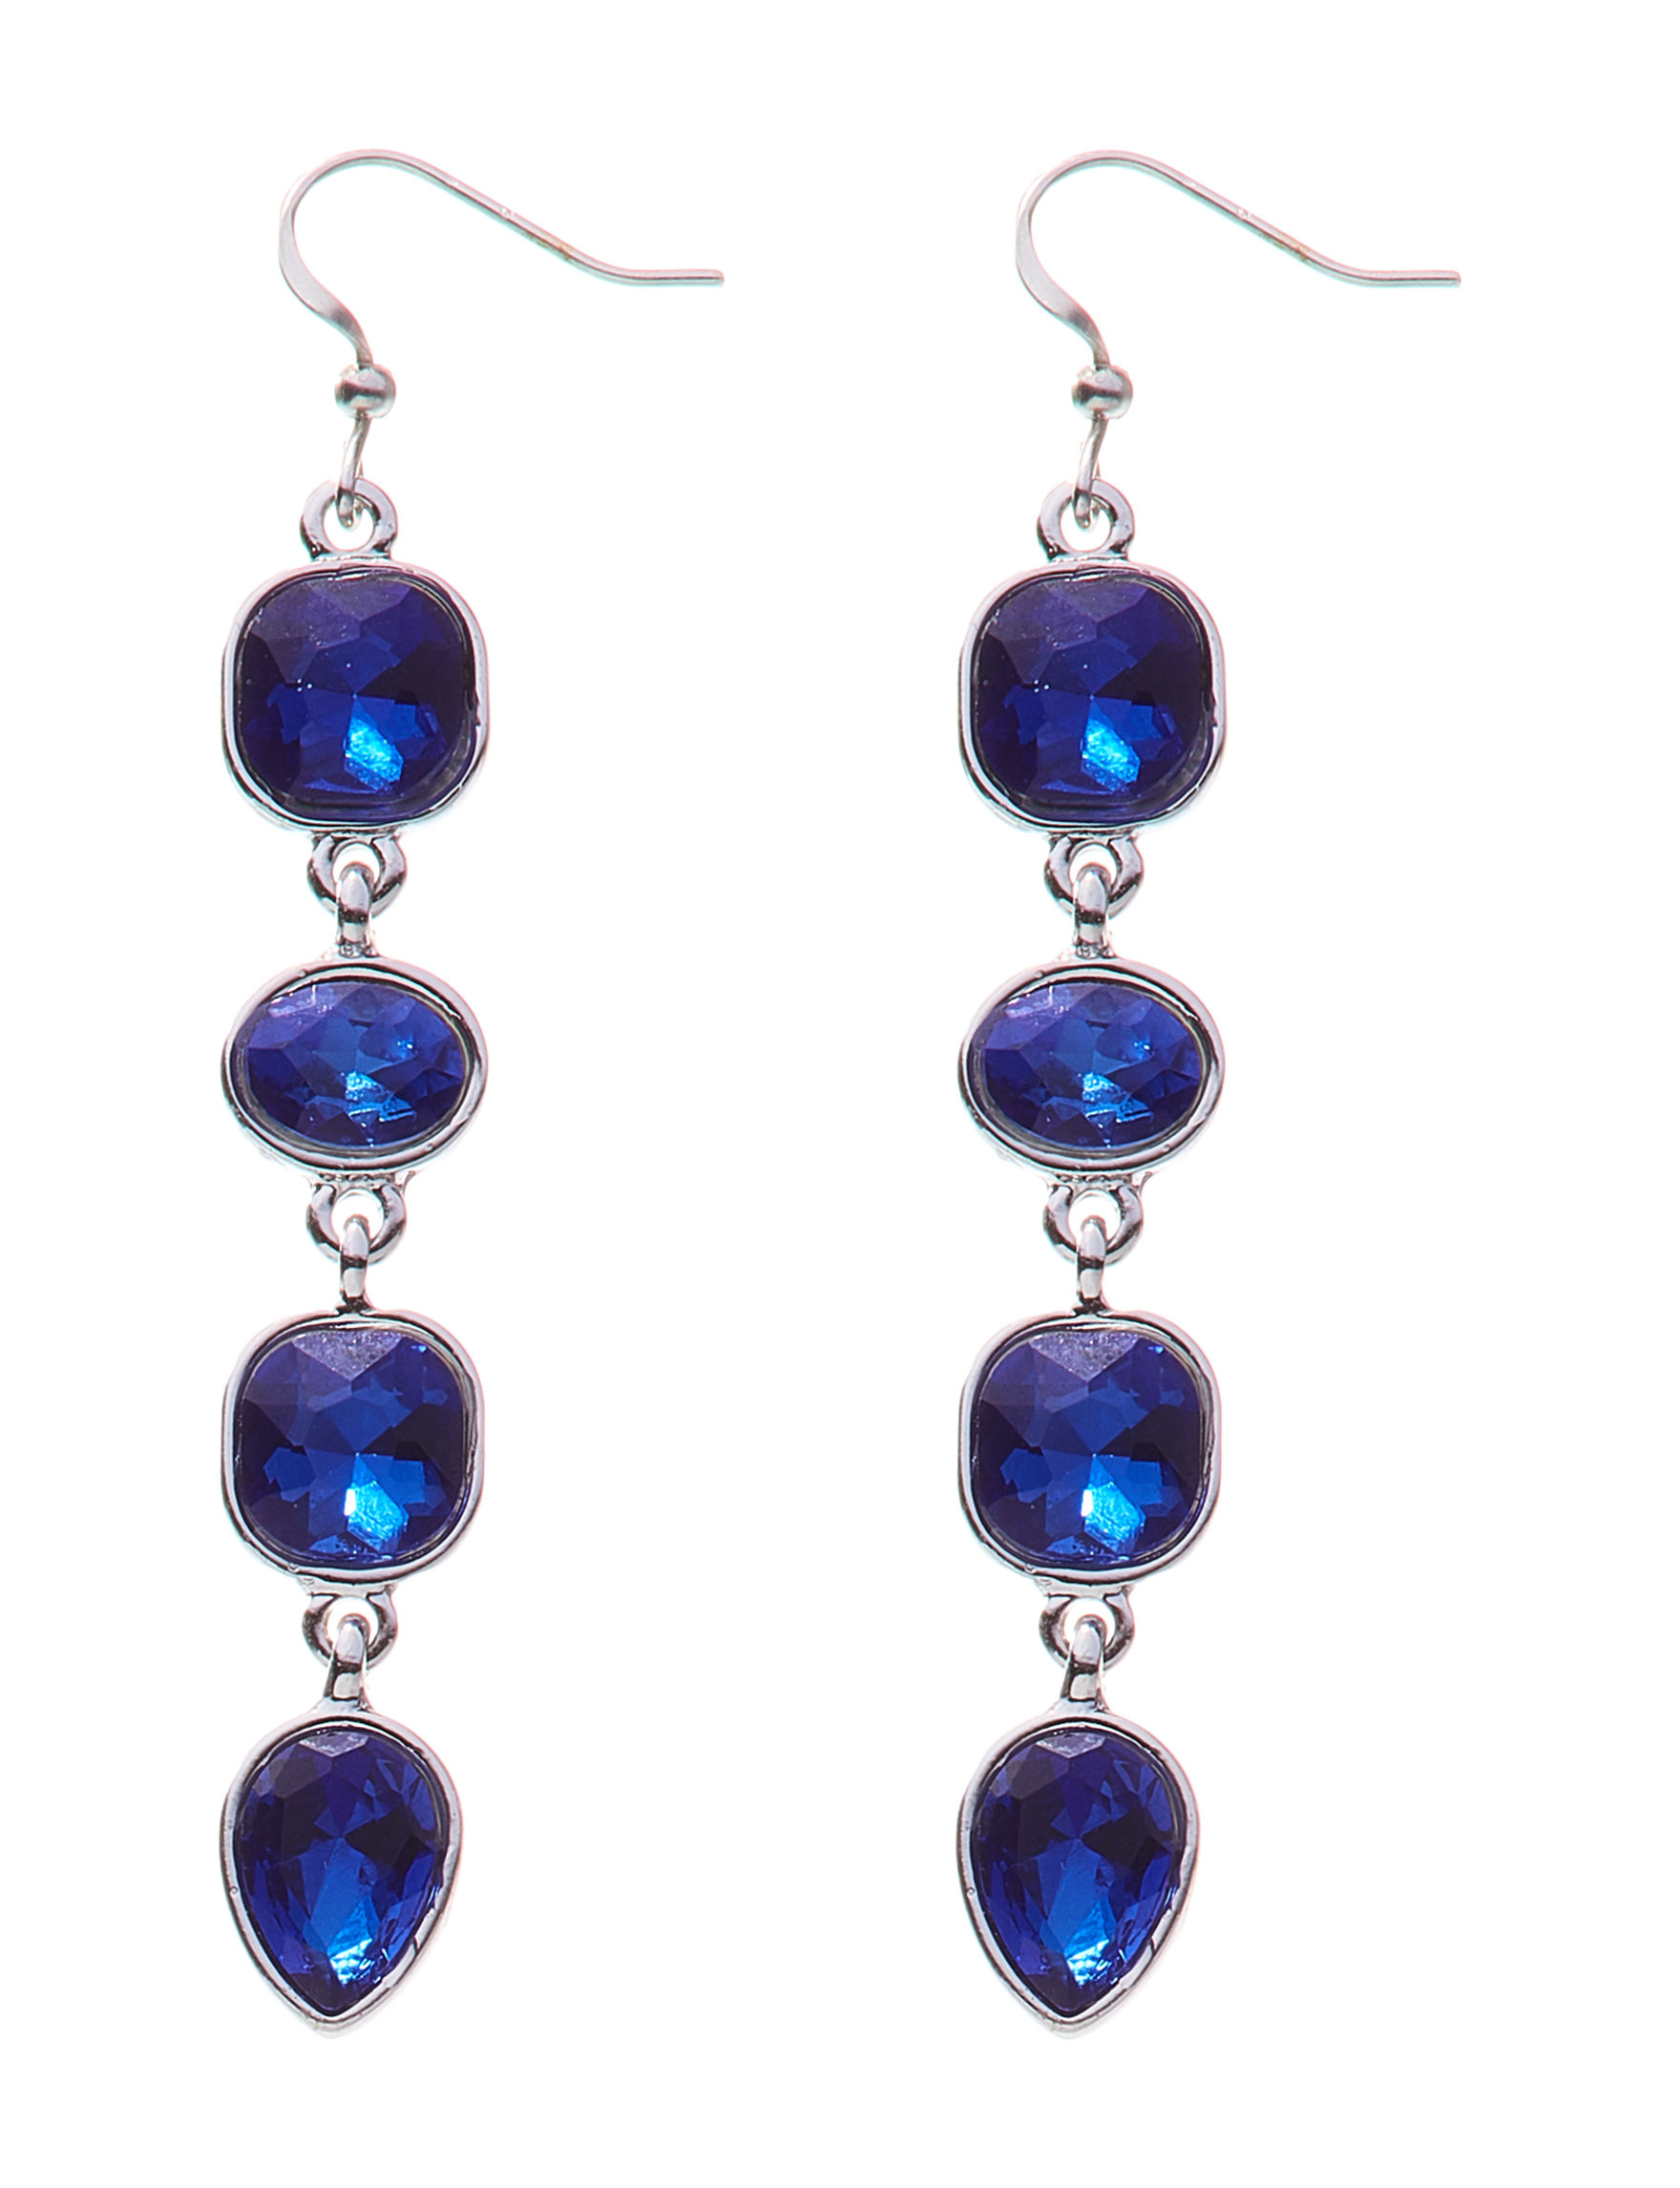 Hannah Silver / Blue Stone Drops Earrings Fashion Jewelry